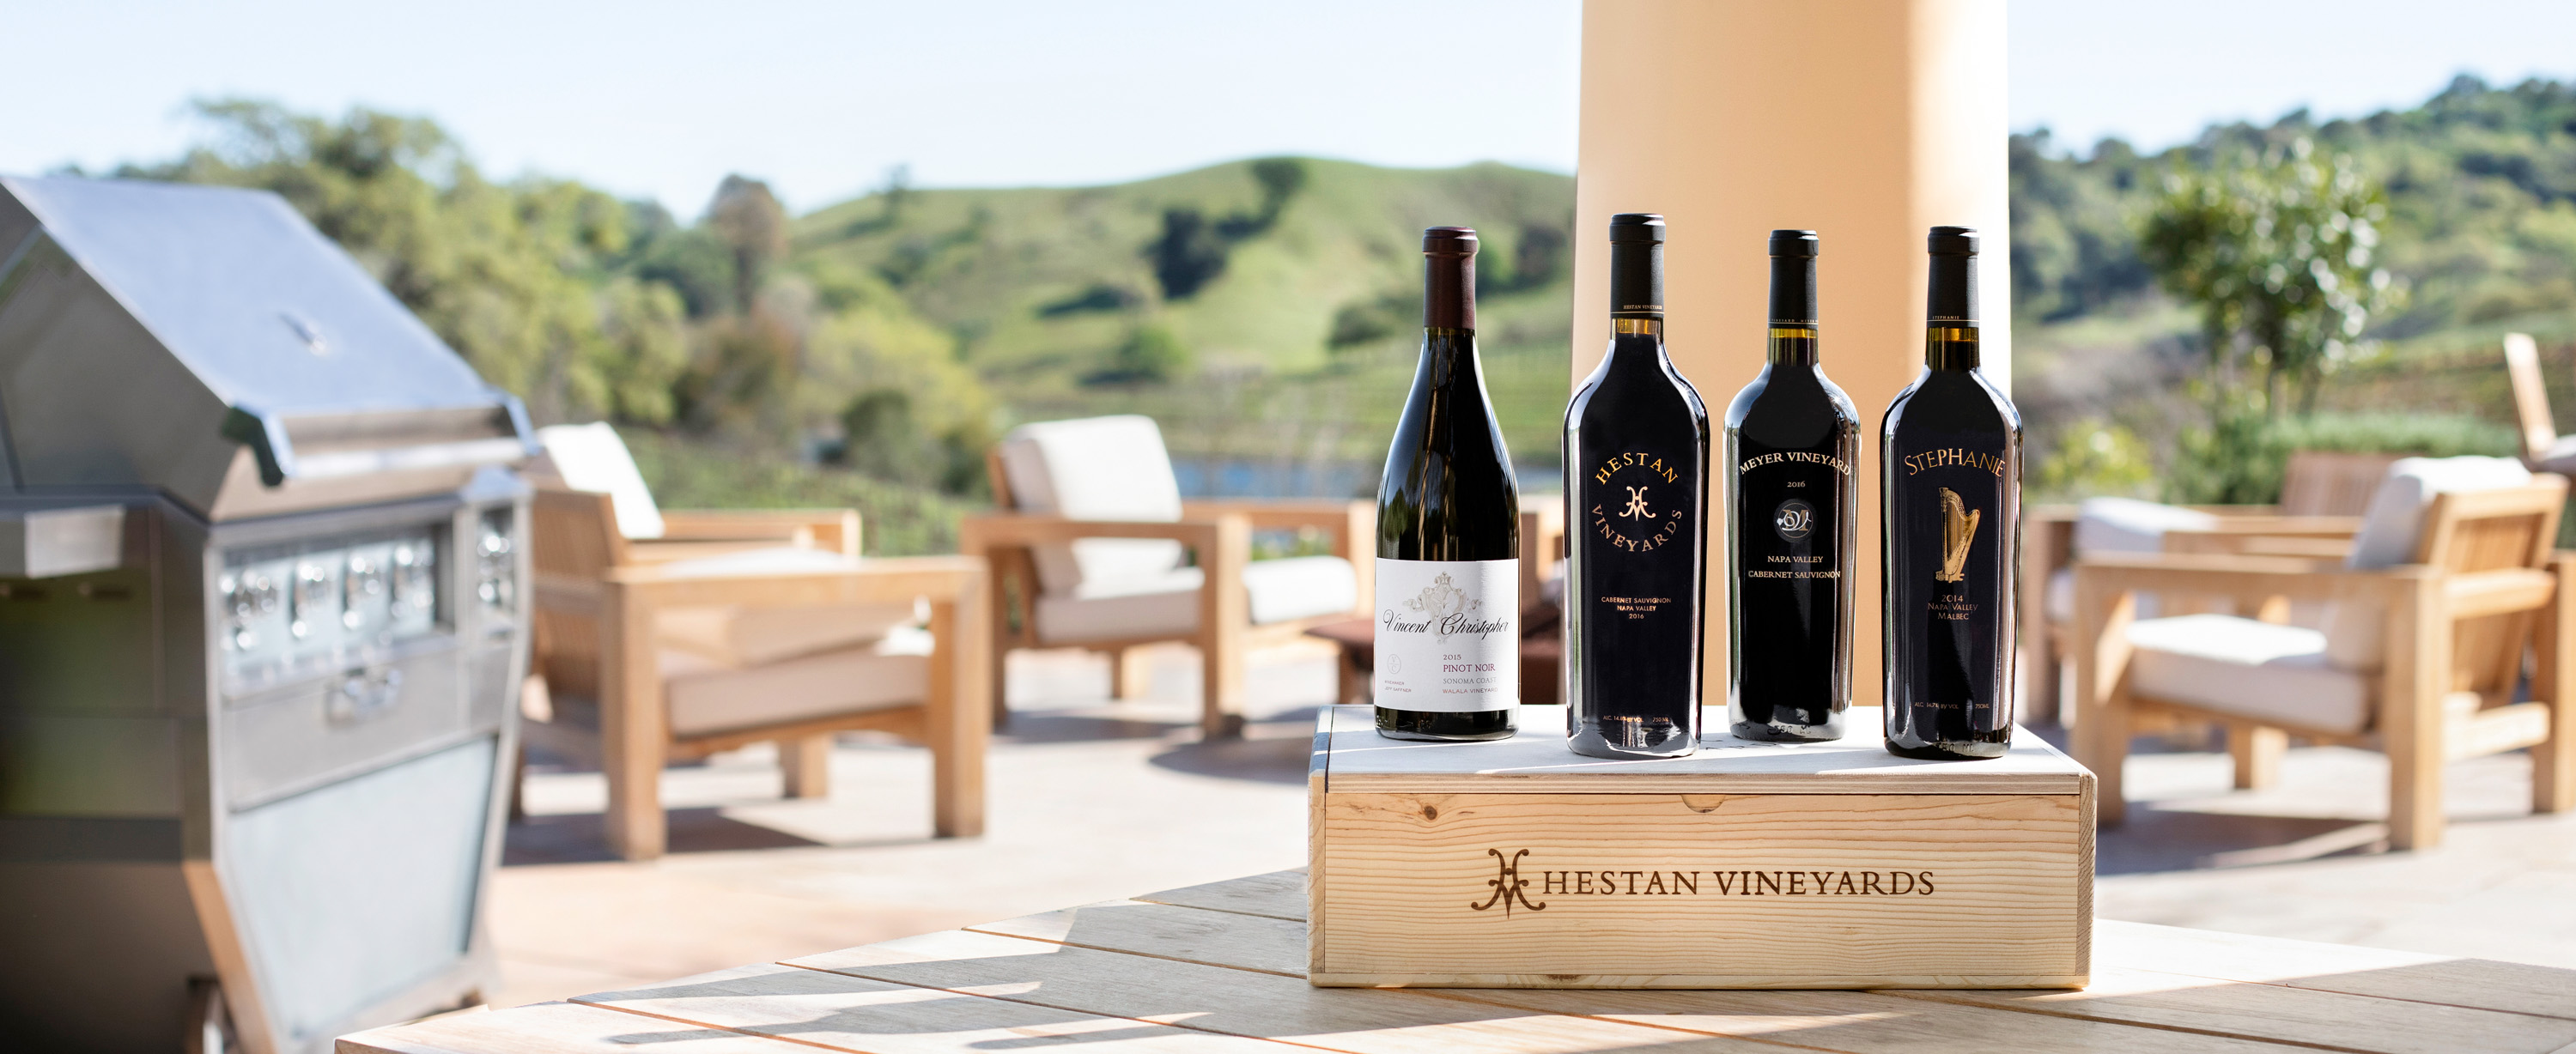 Hestan_Vineyards1225-2b